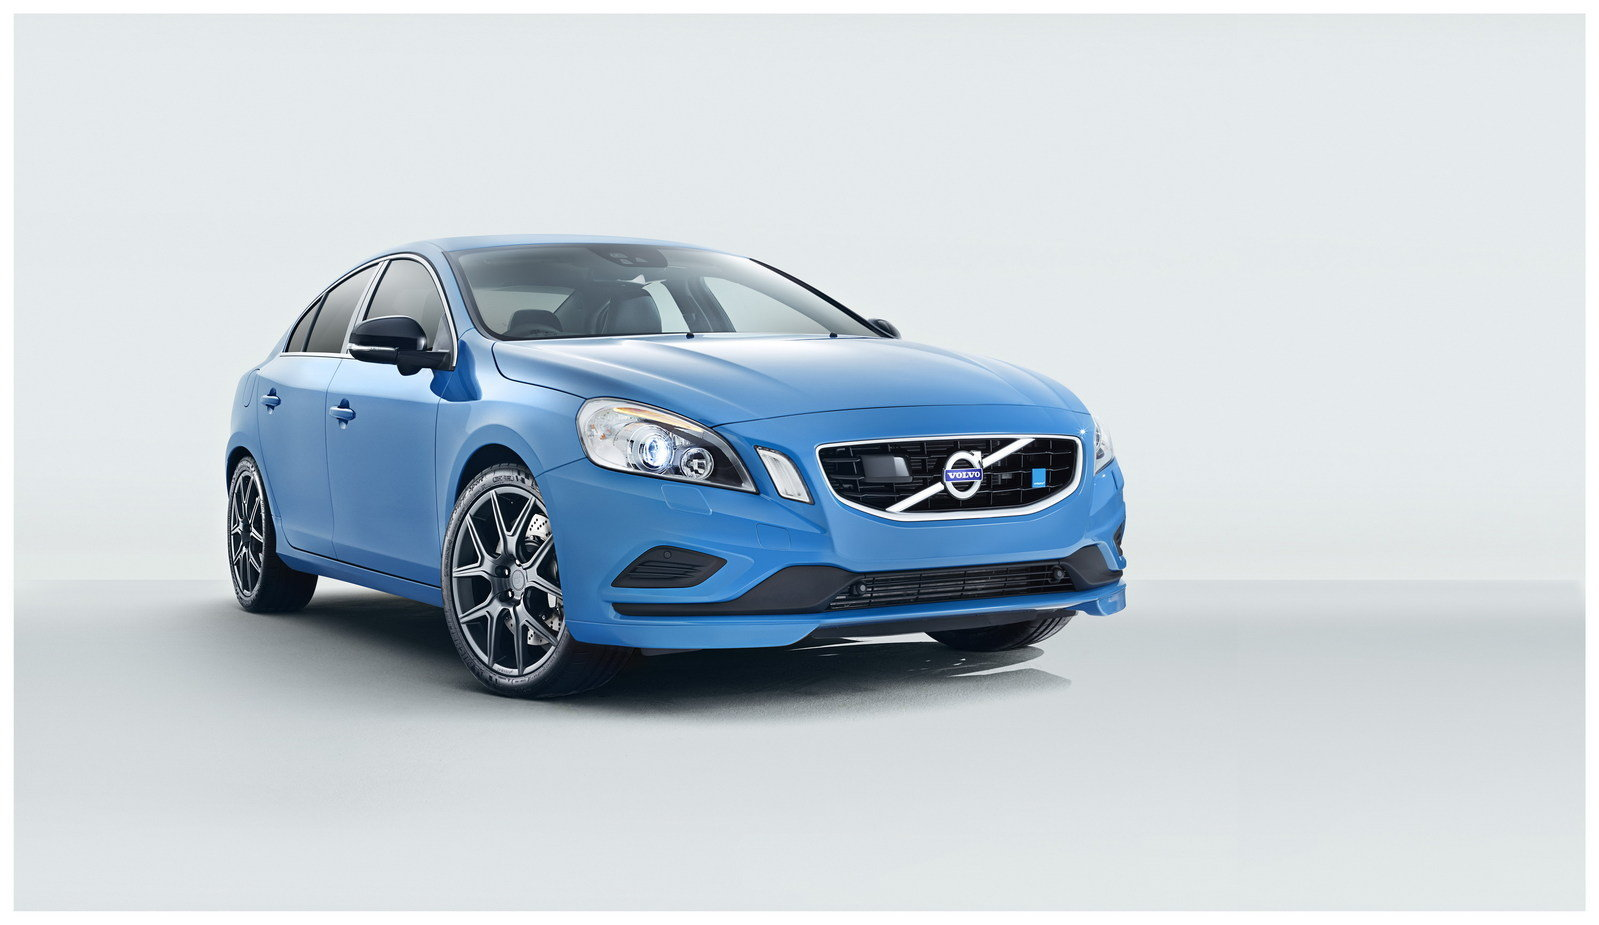 2014 volvo s60 polestar 13_1600x0w volvo s60 reviews, specs & prices top speed Volvo Wiring Harness Problems at gsmx.co